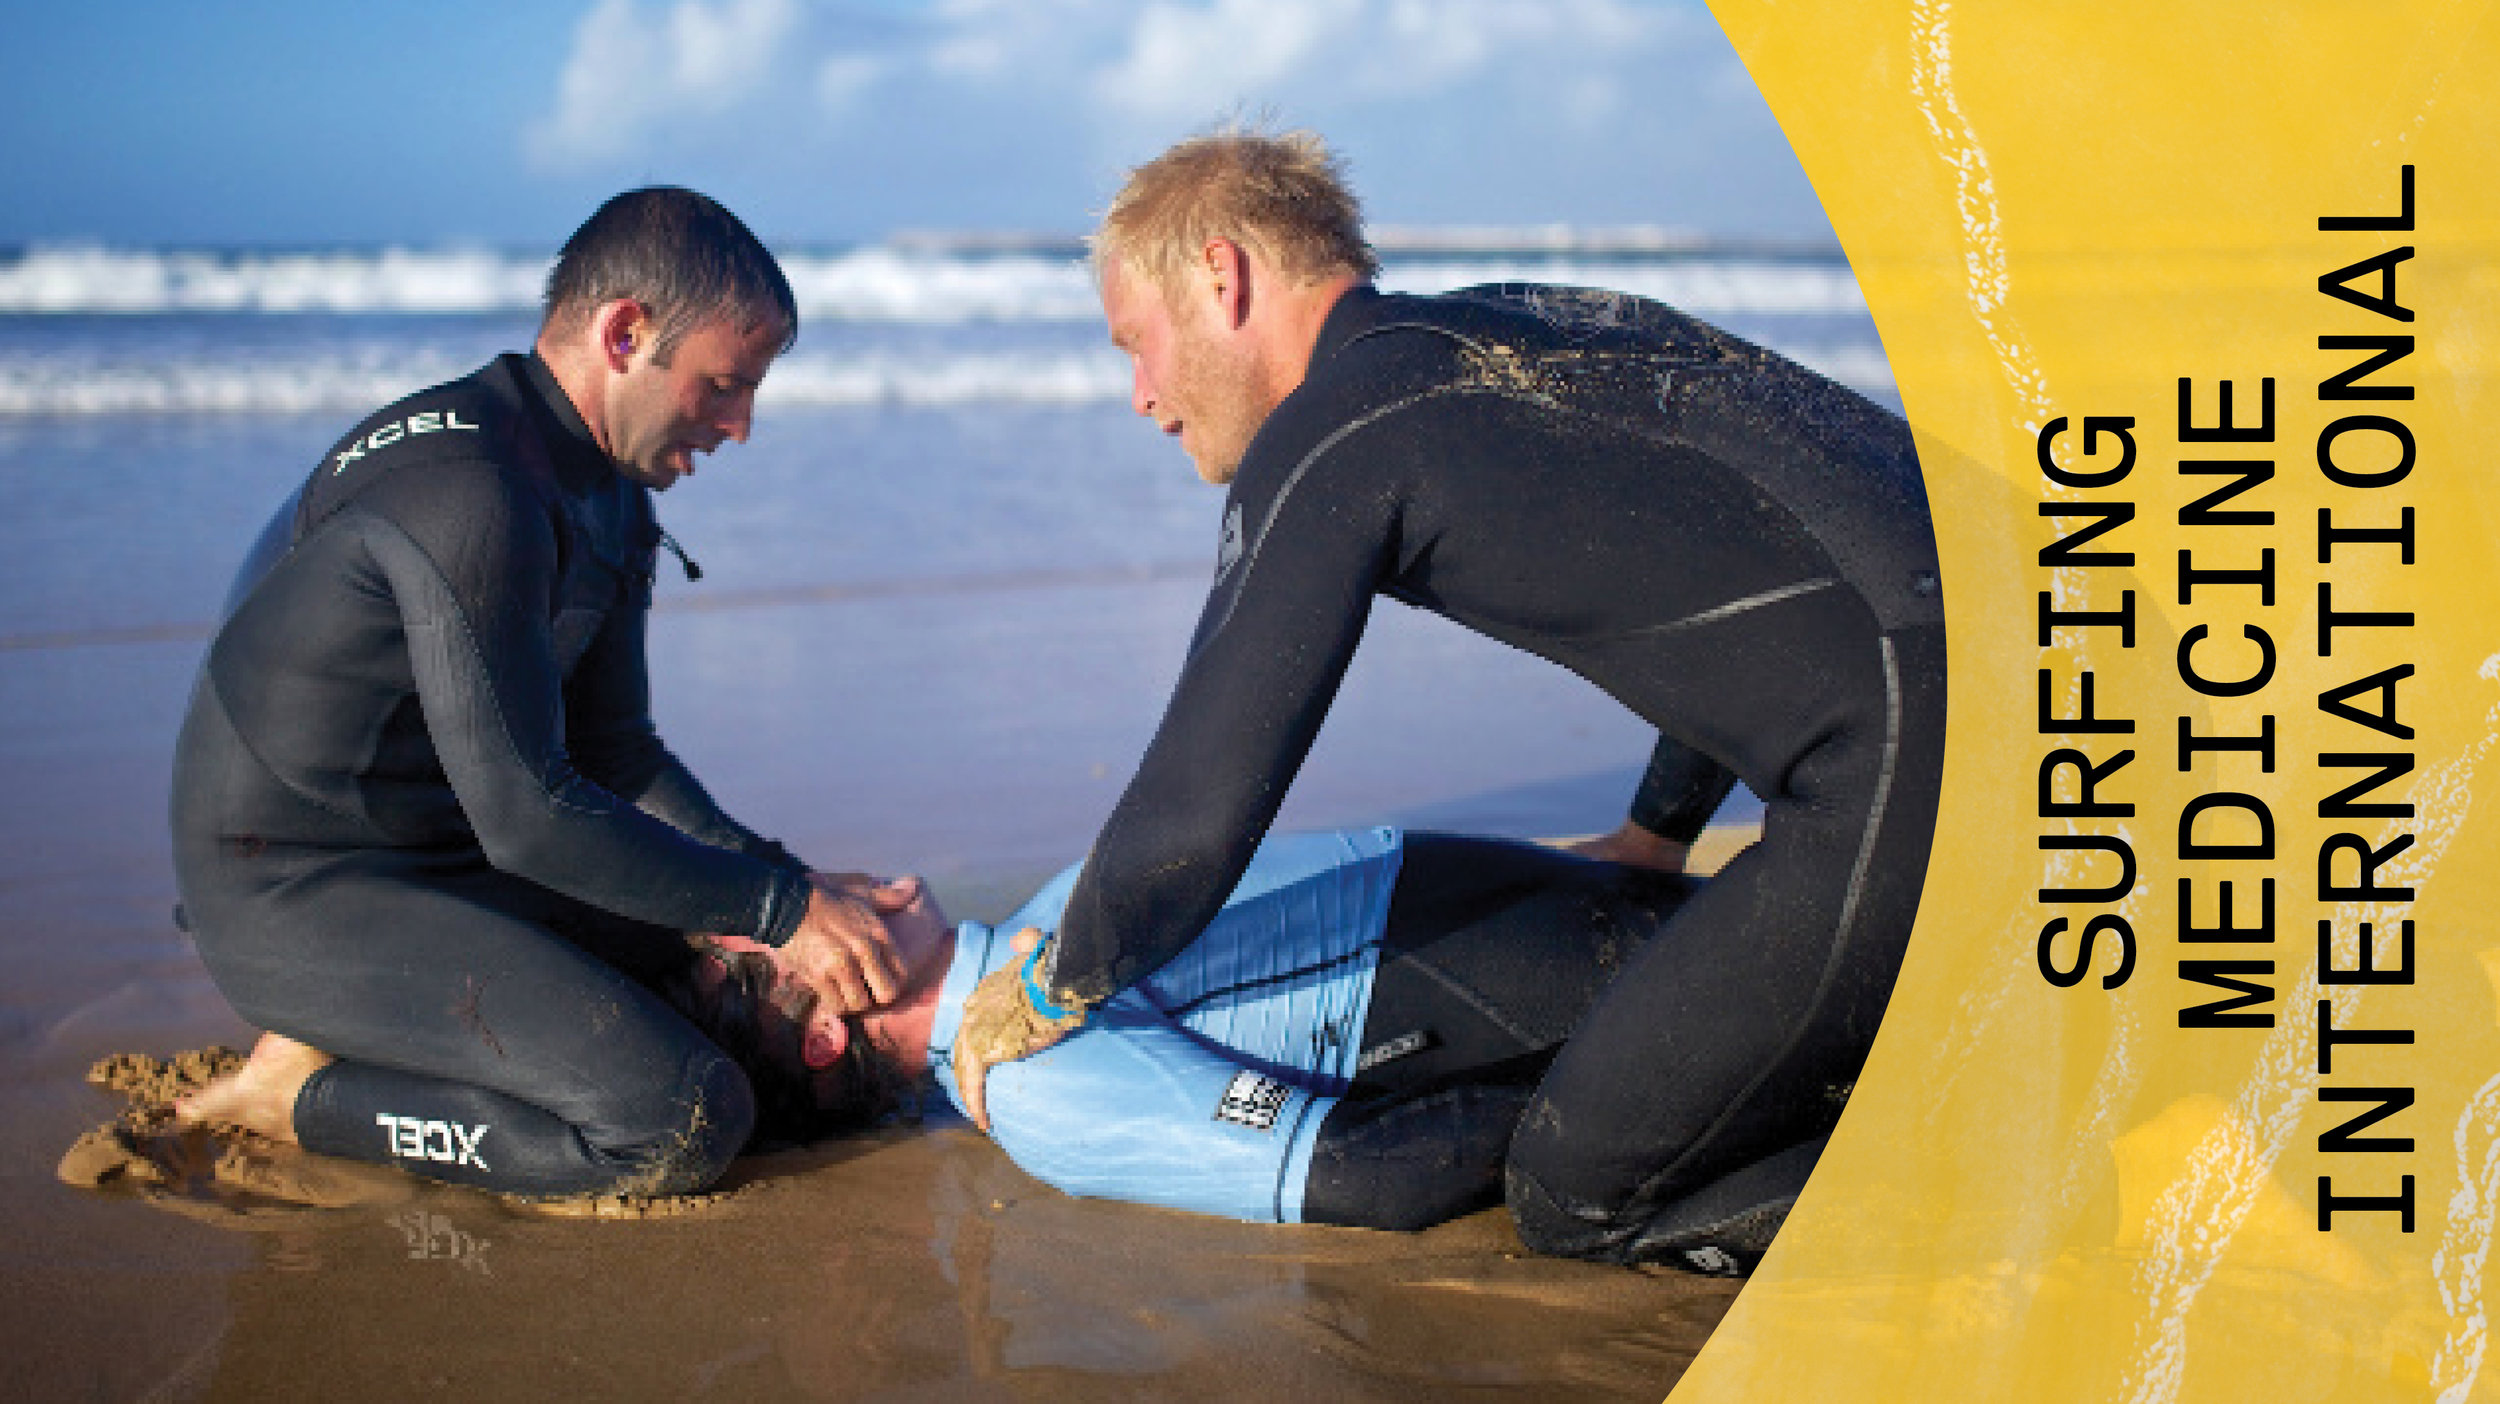 SURFING MEDICINE - Essential know-how on water safety,surfing medicine and surf travel